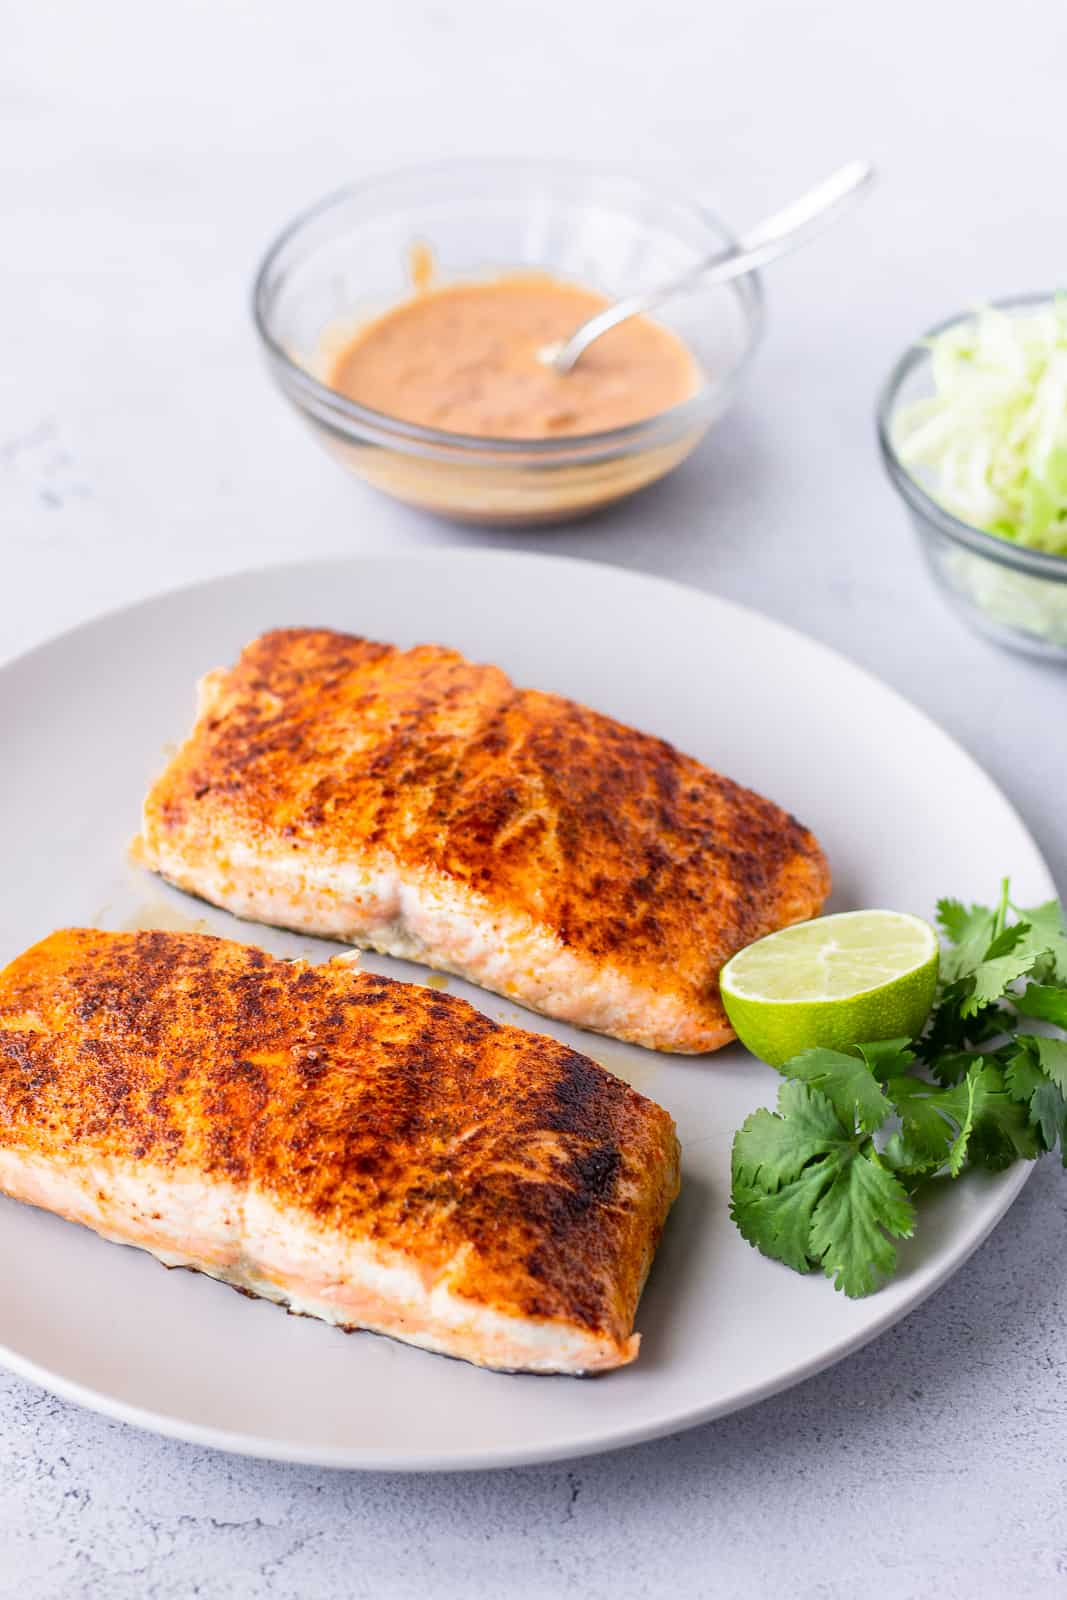 2 cooked salmon fillets garnished with lime and cilantro on the side.